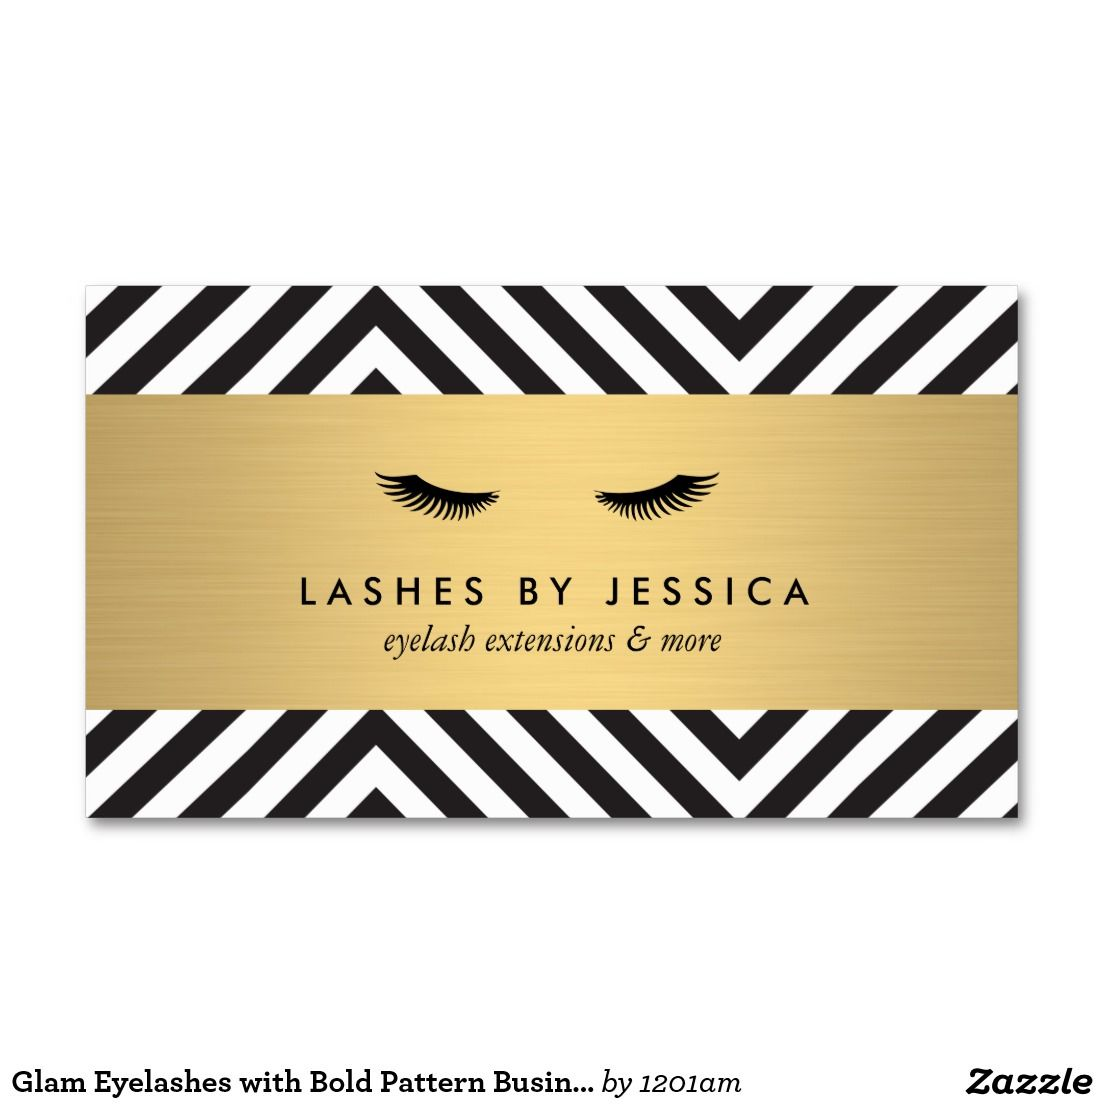 Glam eyelashes with bold pattern business card template for lash extensions ready to for Eyelash extension business cards